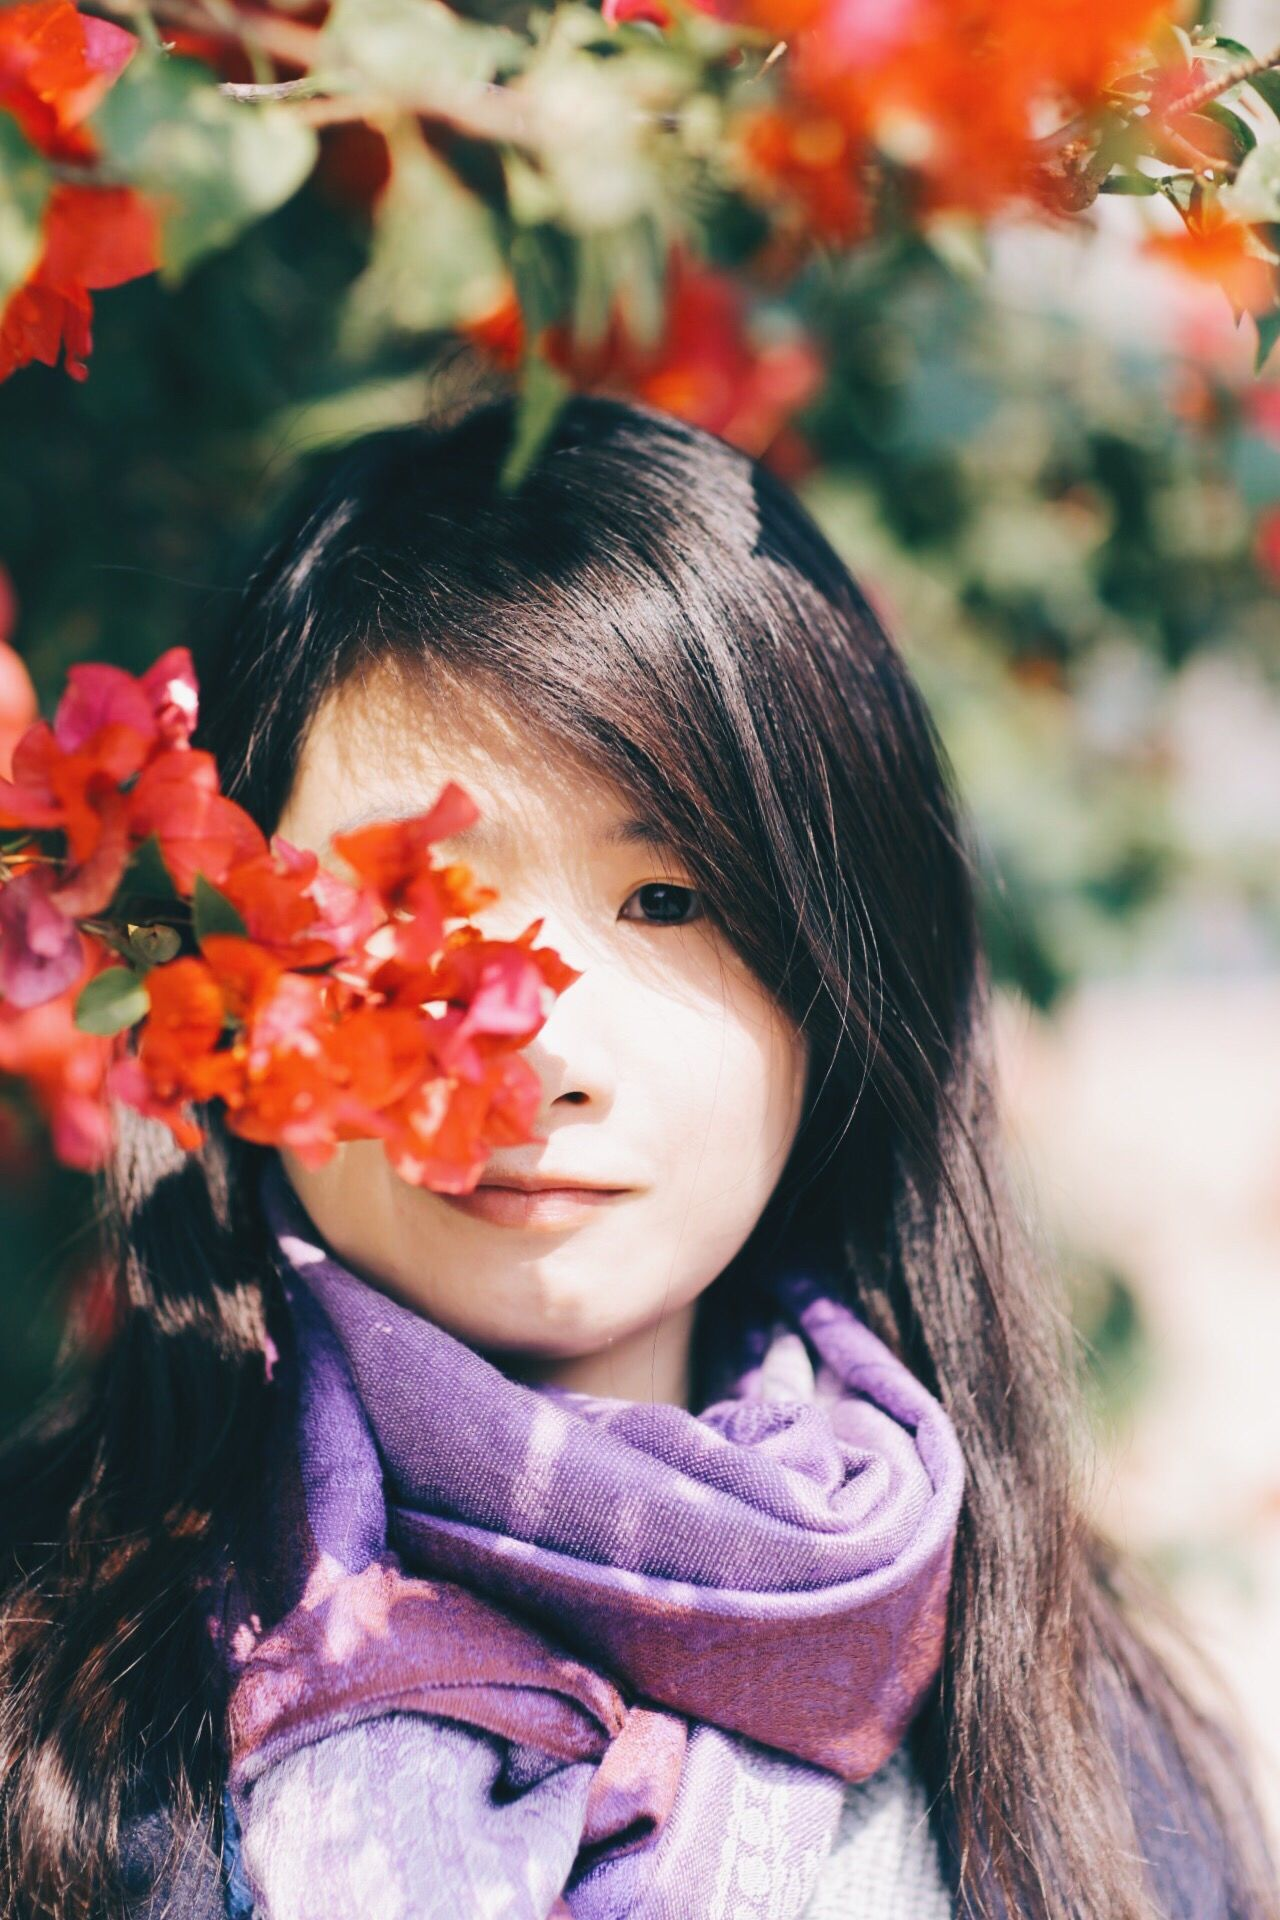 flowery girl One Person Real People Headshot Close-up Flower Nature Leaf Knitted  Outdoors Young Women Day Young Adult Beauty In Nature Portrait Of A Woman Asian  Asian Girl